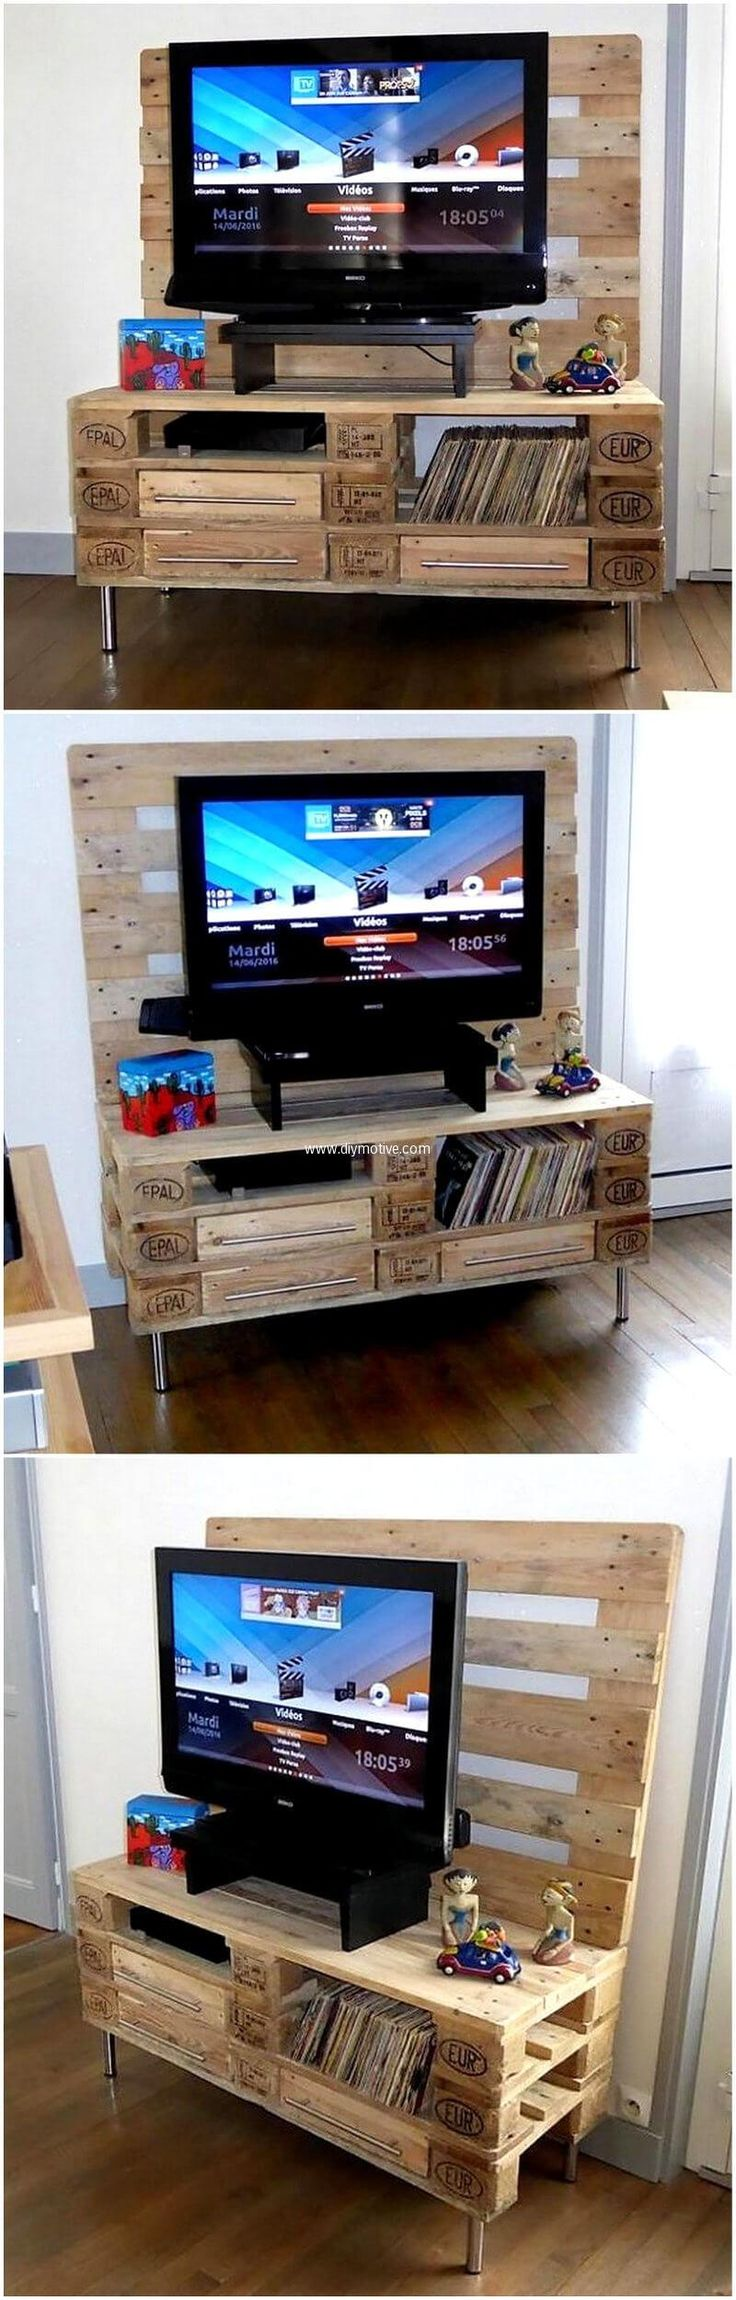 In need of a better and unique furniture ideas for your living area? Here we go providing you an idea to create a package containing masterpieces by recycling wood pallets. Awesome idea for pallets wood made living room pallet TV stand is being presented here that fill your room with natural feel and classy look. The overall presentation of this package will let you in the state of being engrossed. It is a wise decision to implement this re-transformed wood pallet living room furniture idea